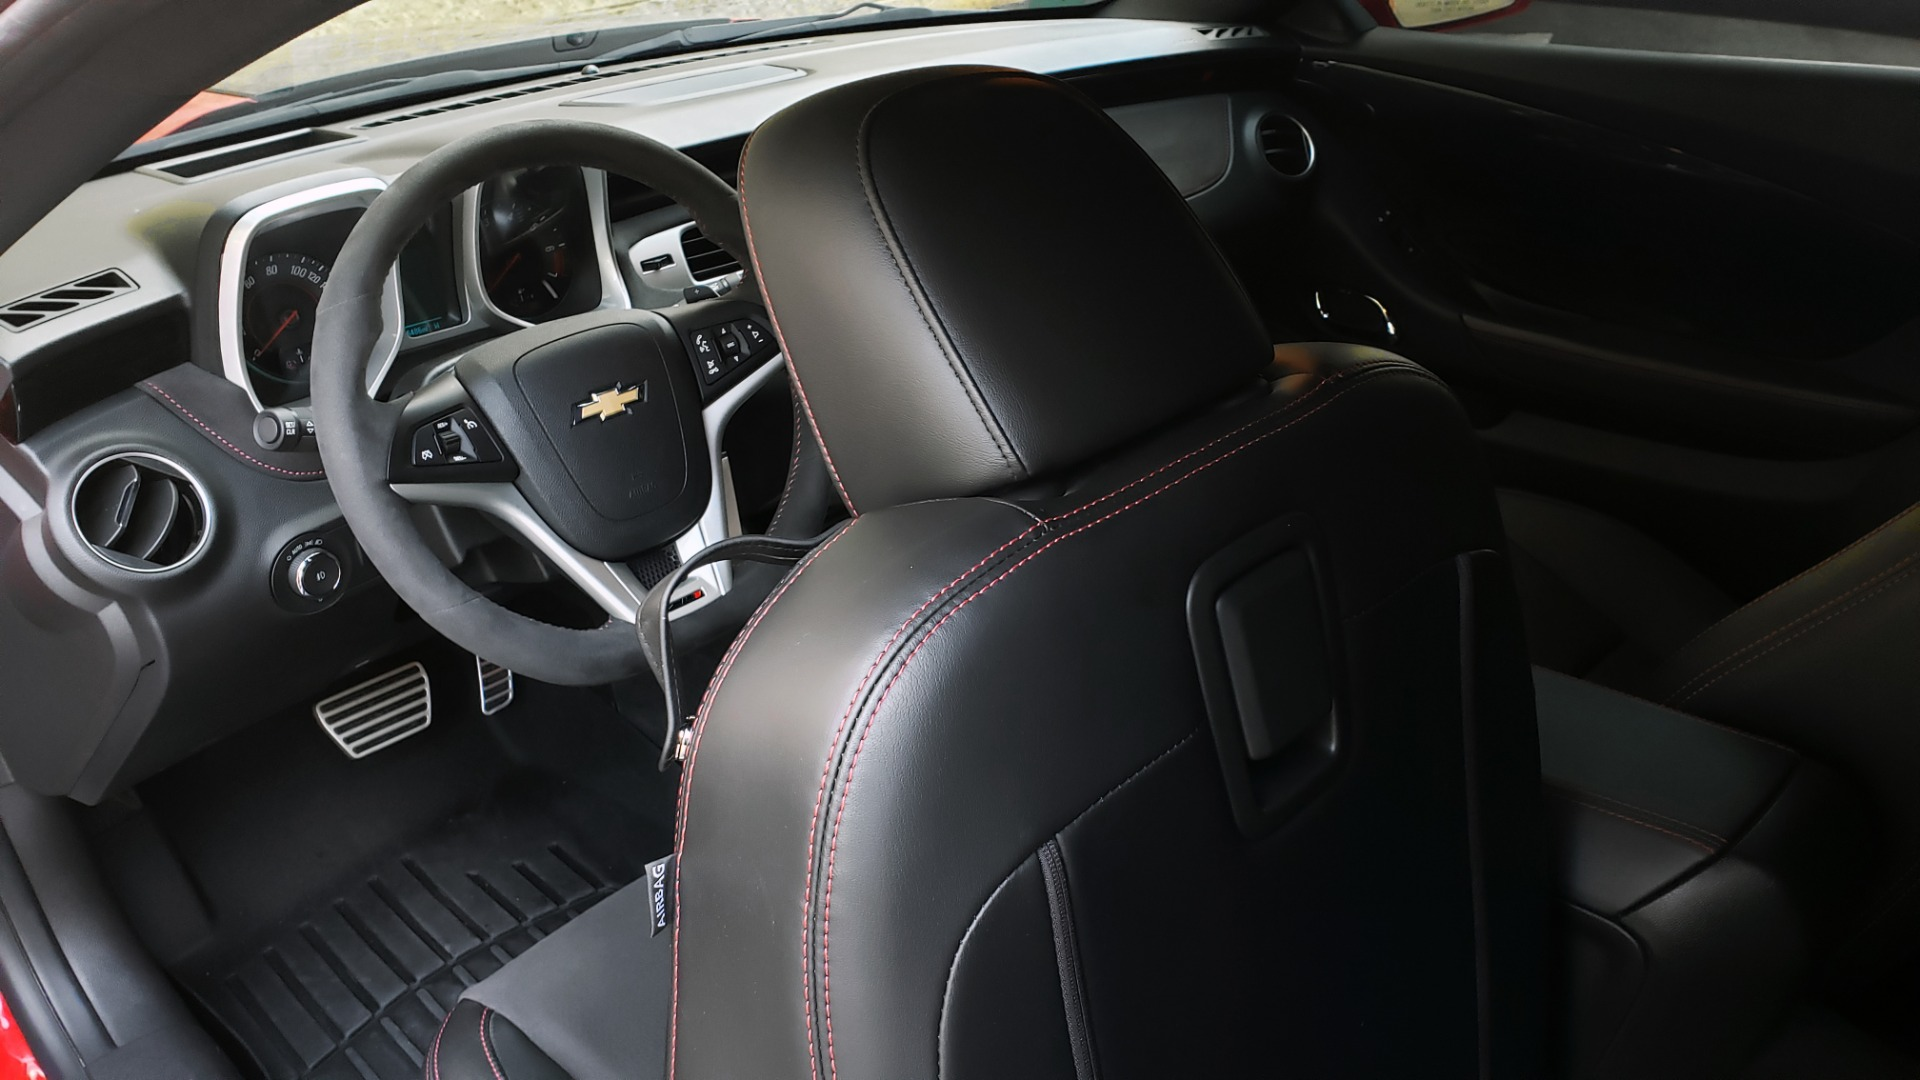 Used 2013 Chevrolet CAMARO ZL1 580HP / AUTO / NAV / BOSTON ACOUSTIC SND / REARVIEW for sale $40,995 at Formula Imports in Charlotte NC 28227 71